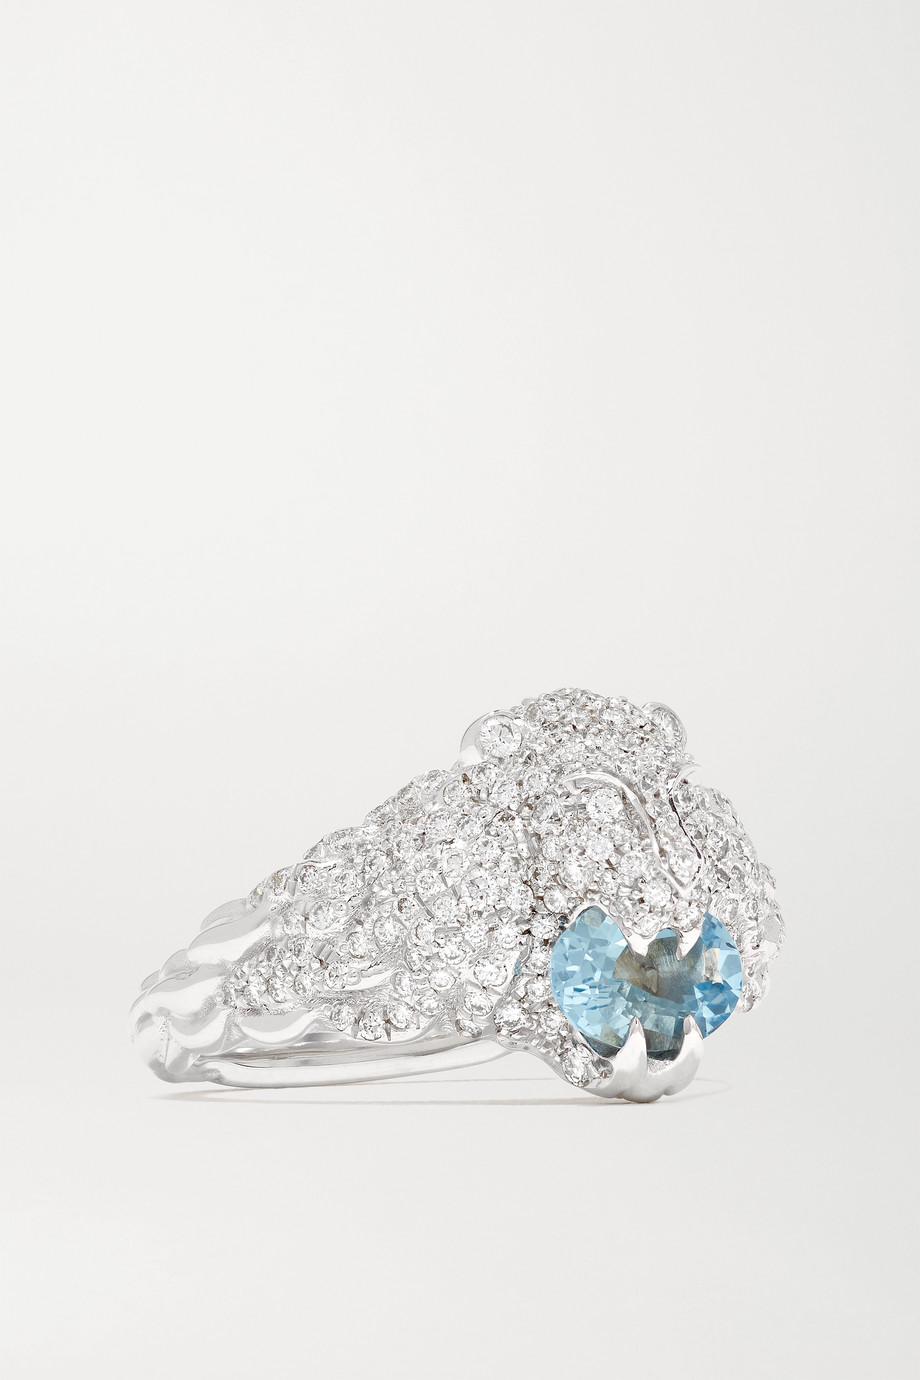 GUCCI 18-karat white gold, diamond and aquamarine ring